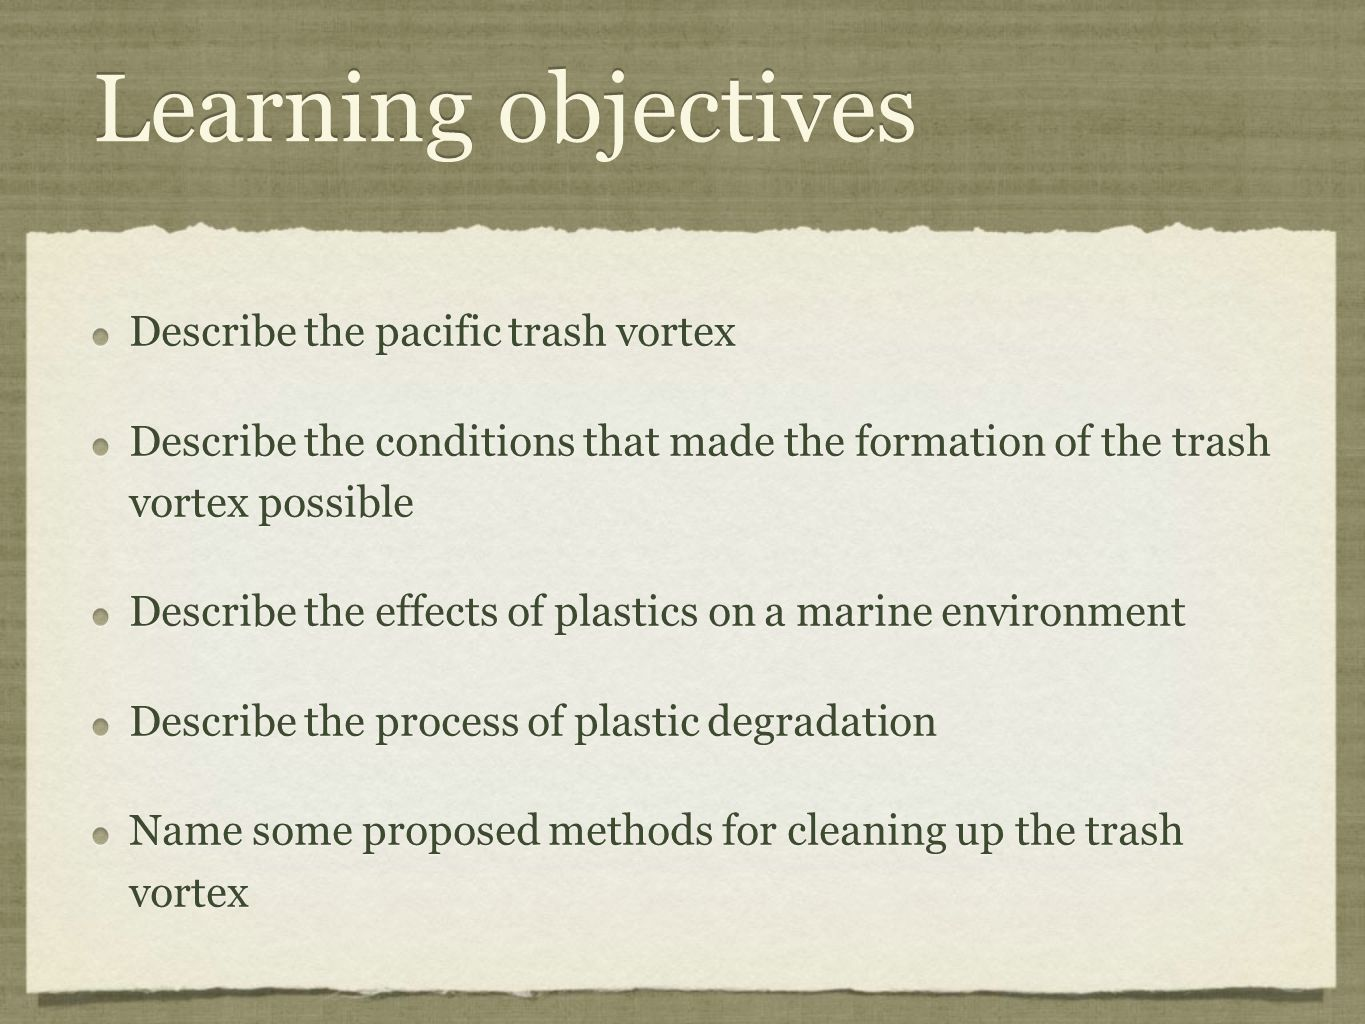 Learning objectives Describe the pacific trash vortex Describe the conditions that made the formation of the trash vortex possible Describe the effects of plastics on a marine environment Describe the process of plastic degradation Name some proposed methods for cleaning up the trash vortex Describe the pacific trash vortex Describe the conditions that made the formation of the trash vortex possible Describe the effects of plastics on a marine environment Describe the process of plastic degradation Name some proposed methods for cleaning up the trash vortex